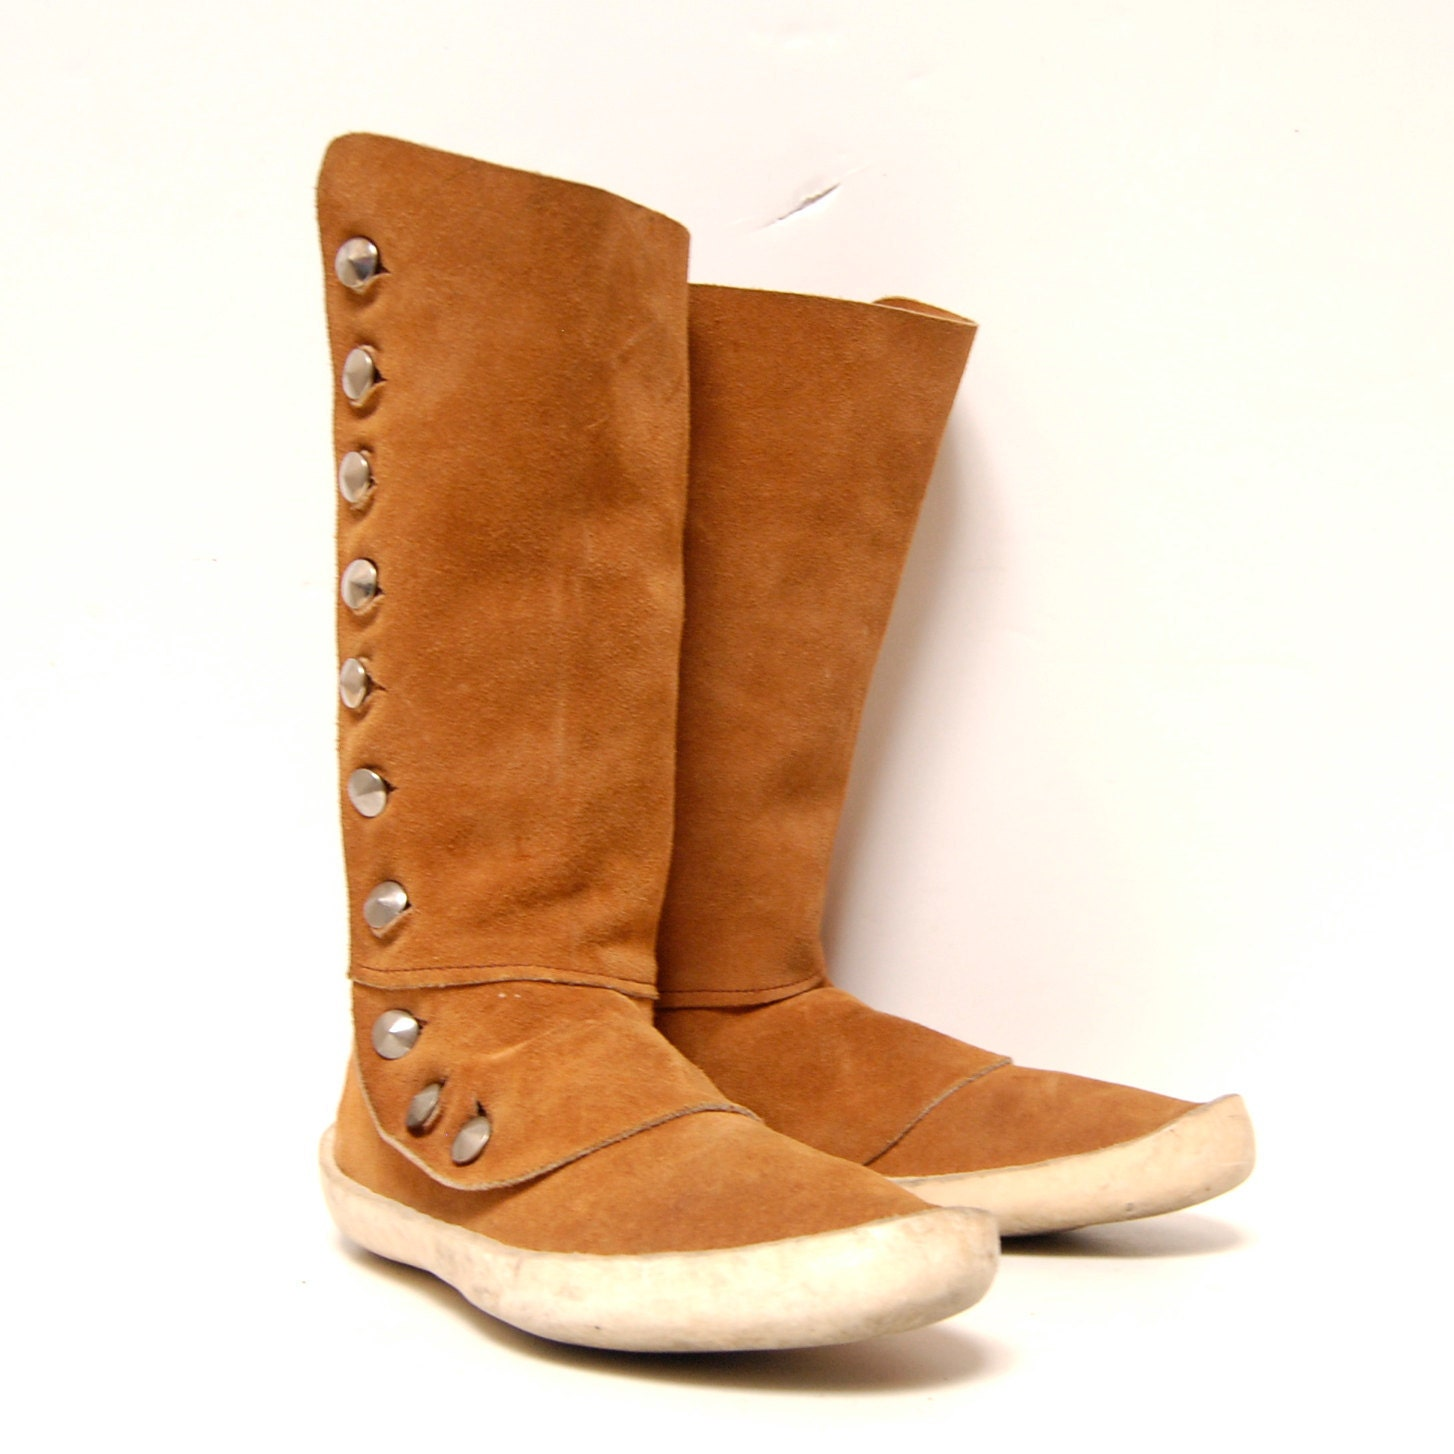 size 10 MOCCASIN tan leather 70s HANDMADE silver metal BUTTONS midcalf boots - 20twentyvintage